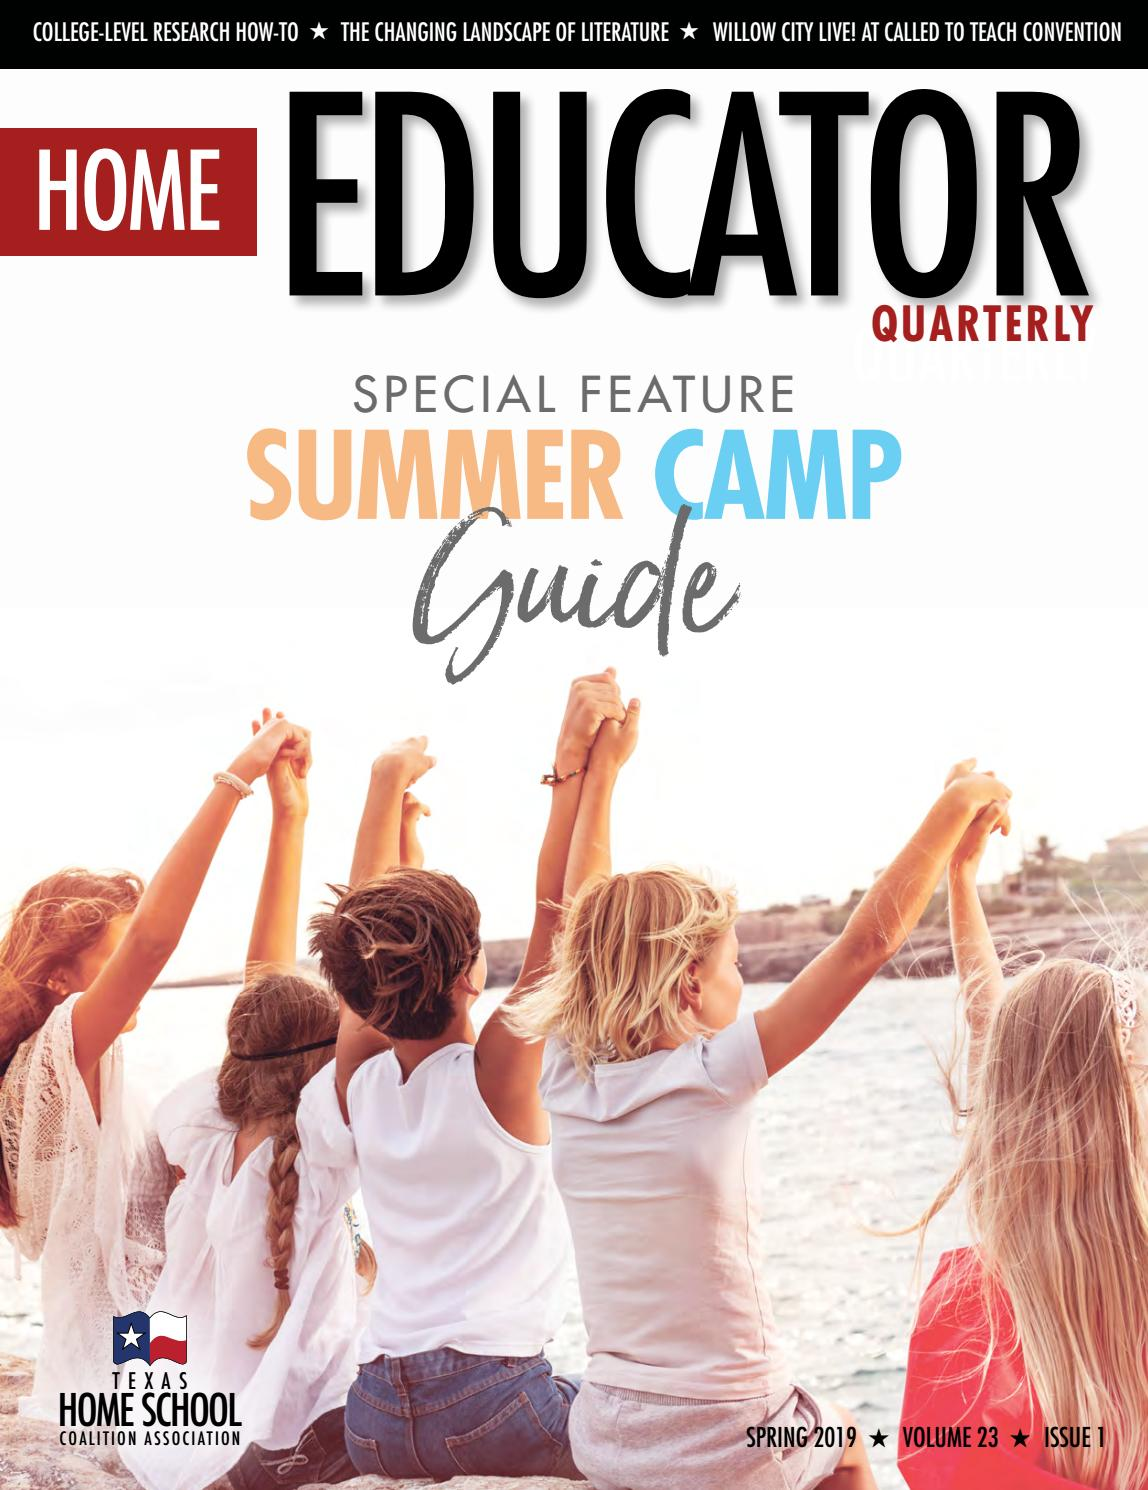 Home Educator 2019 by Texas Home School Coalition